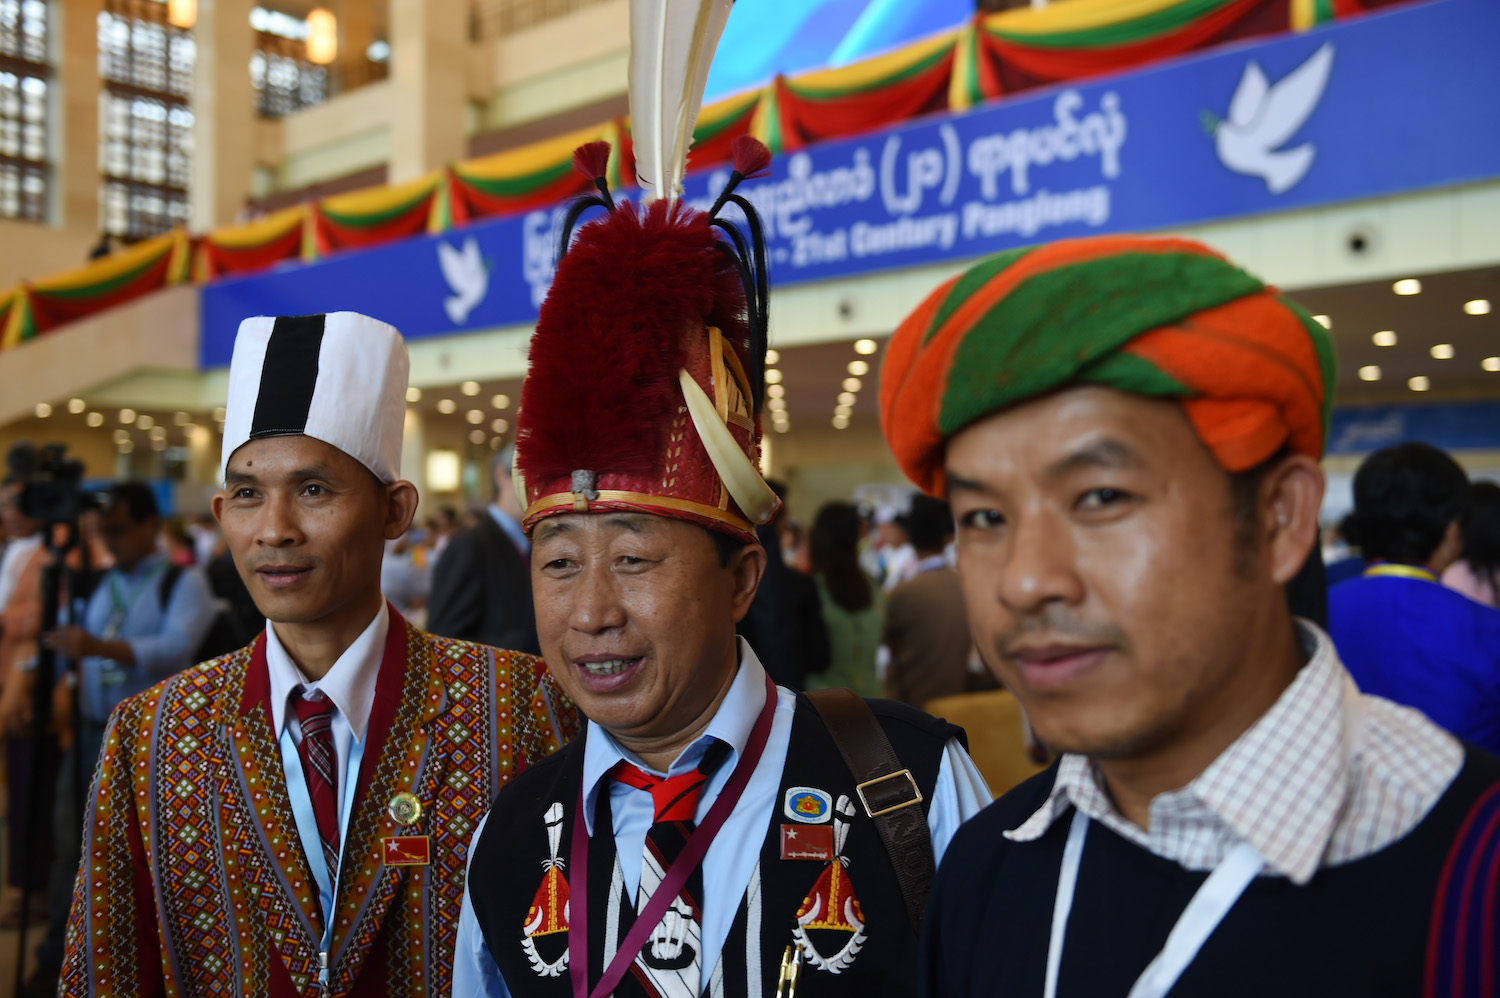 Chin, Naga and Pa-O representatives, wearing traditional costumes, pose for a picture during the opening of a peace conference in Nay Pyi Taw on August 31, 2016. (AFP)